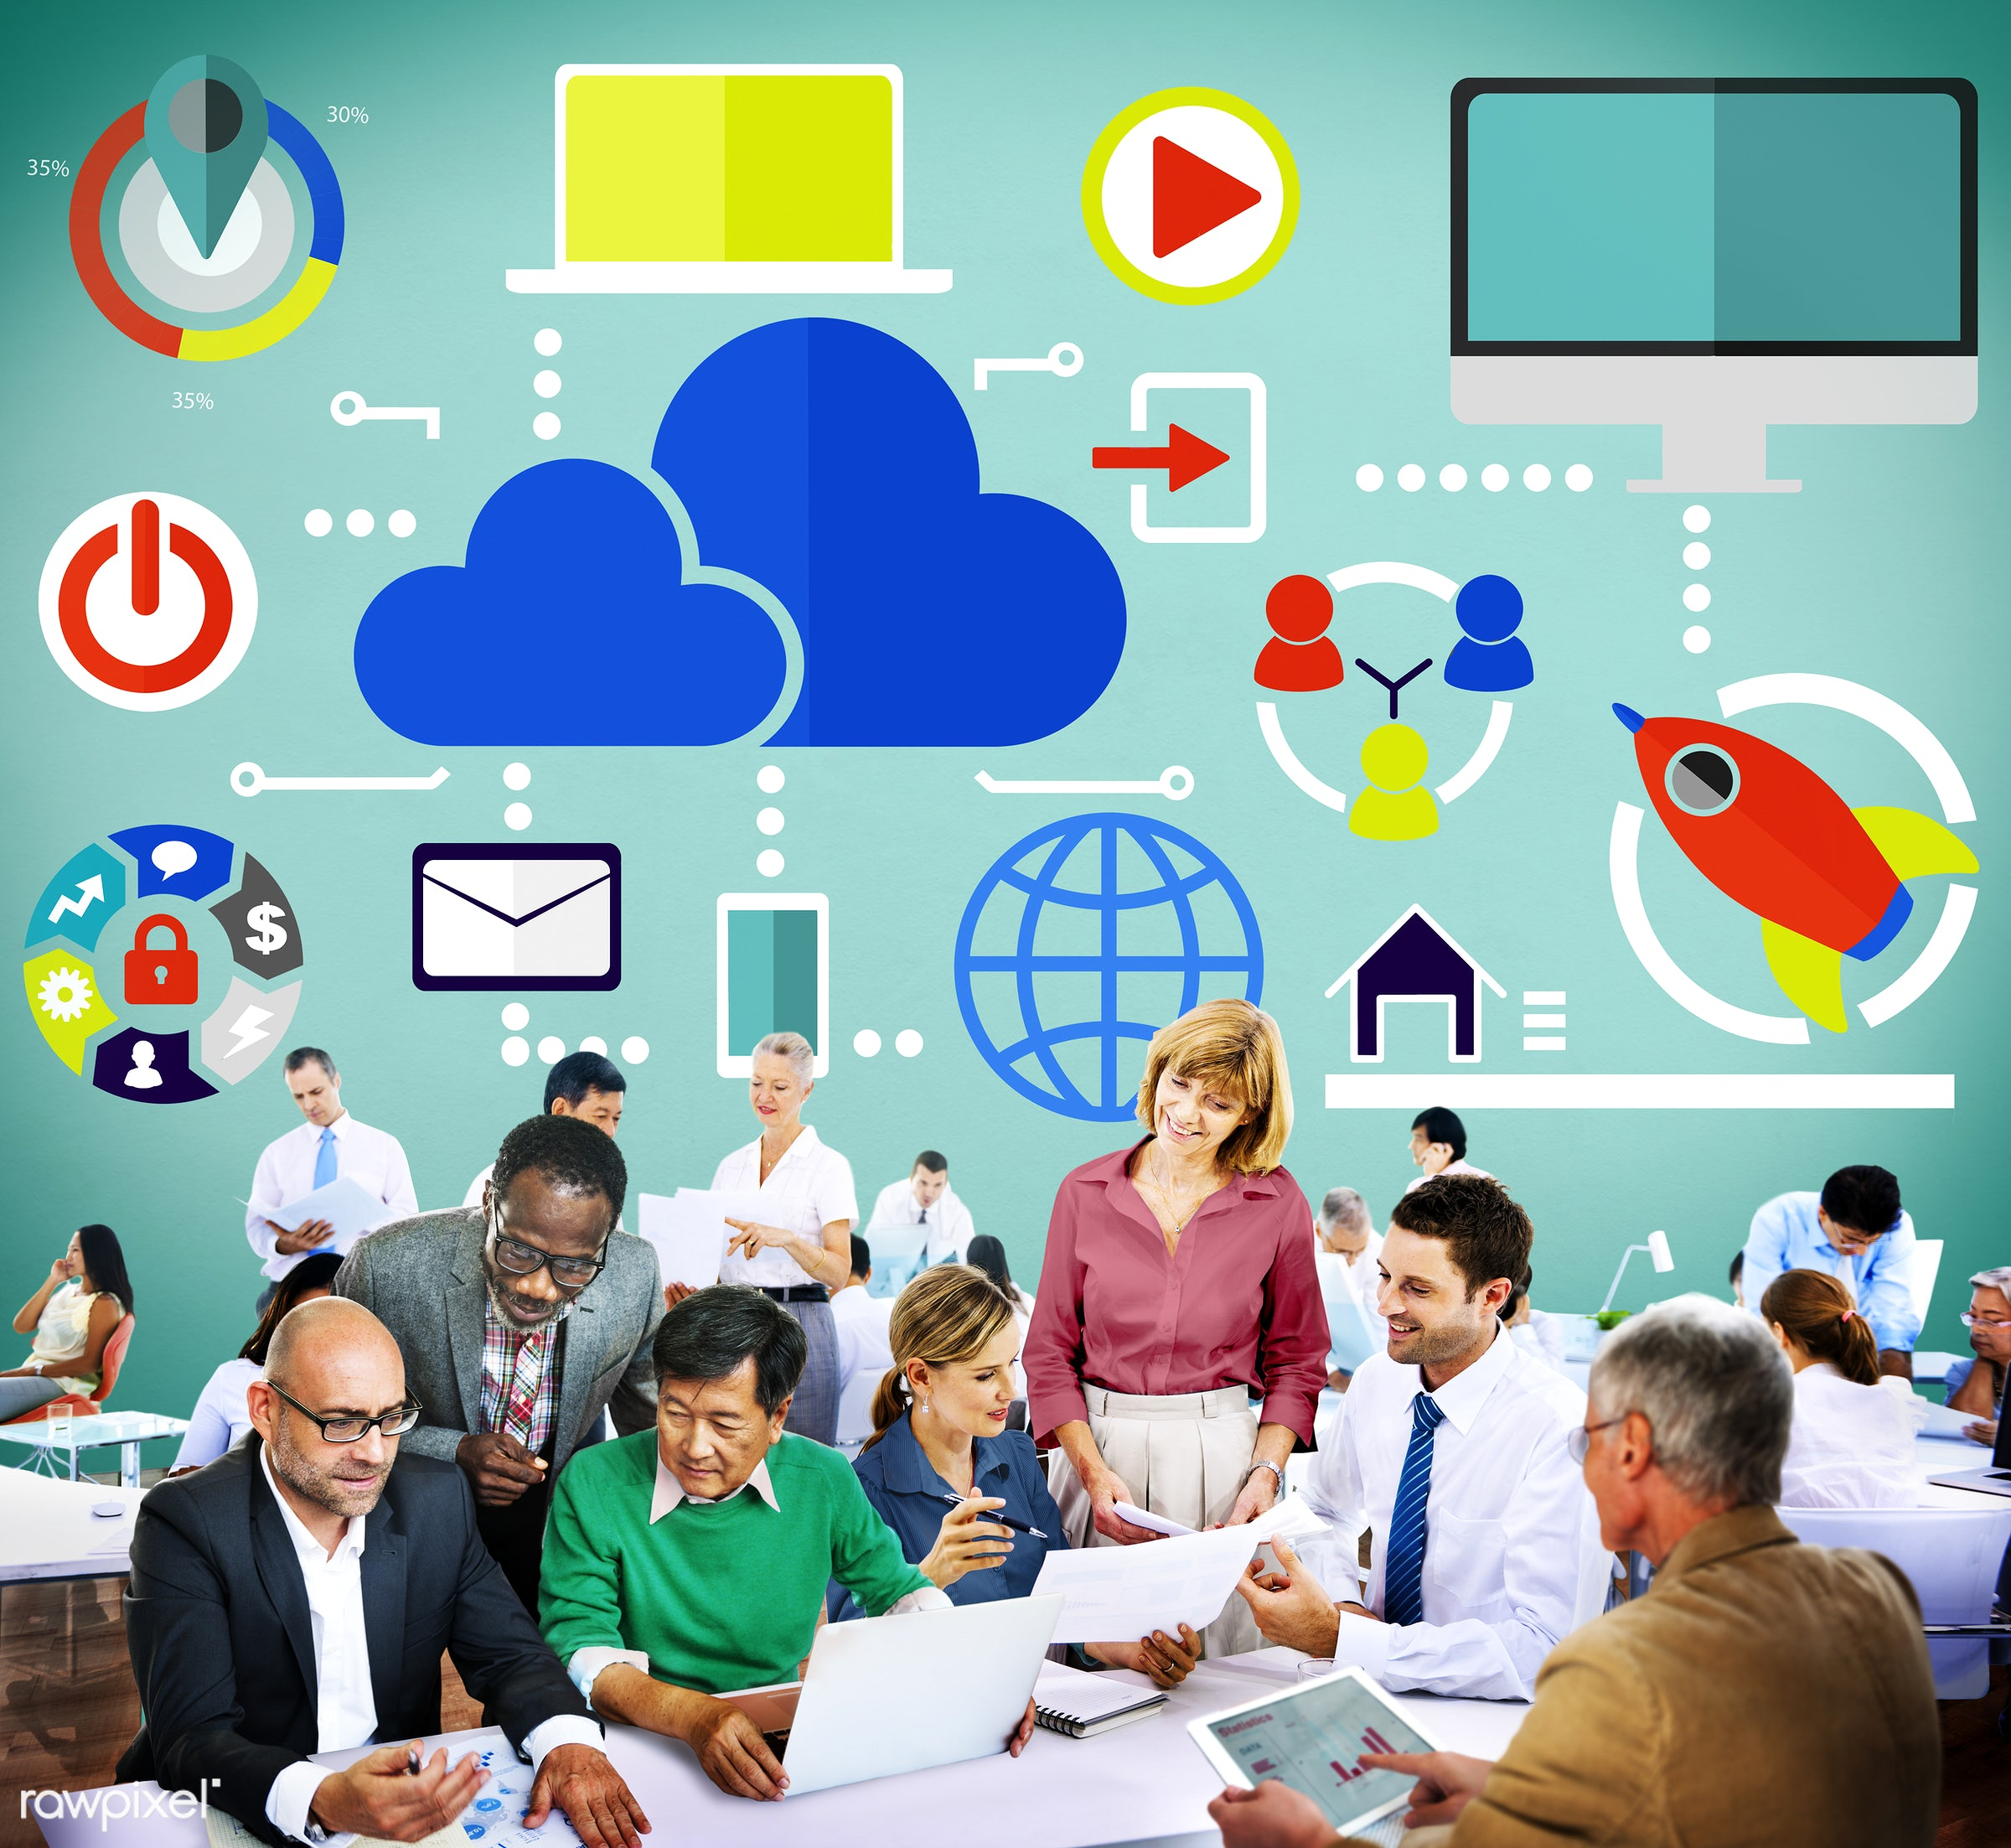 analysis, big data, business, business people, businessmen, businesswomen, busy, cloud, cloud computing, cloud network,...